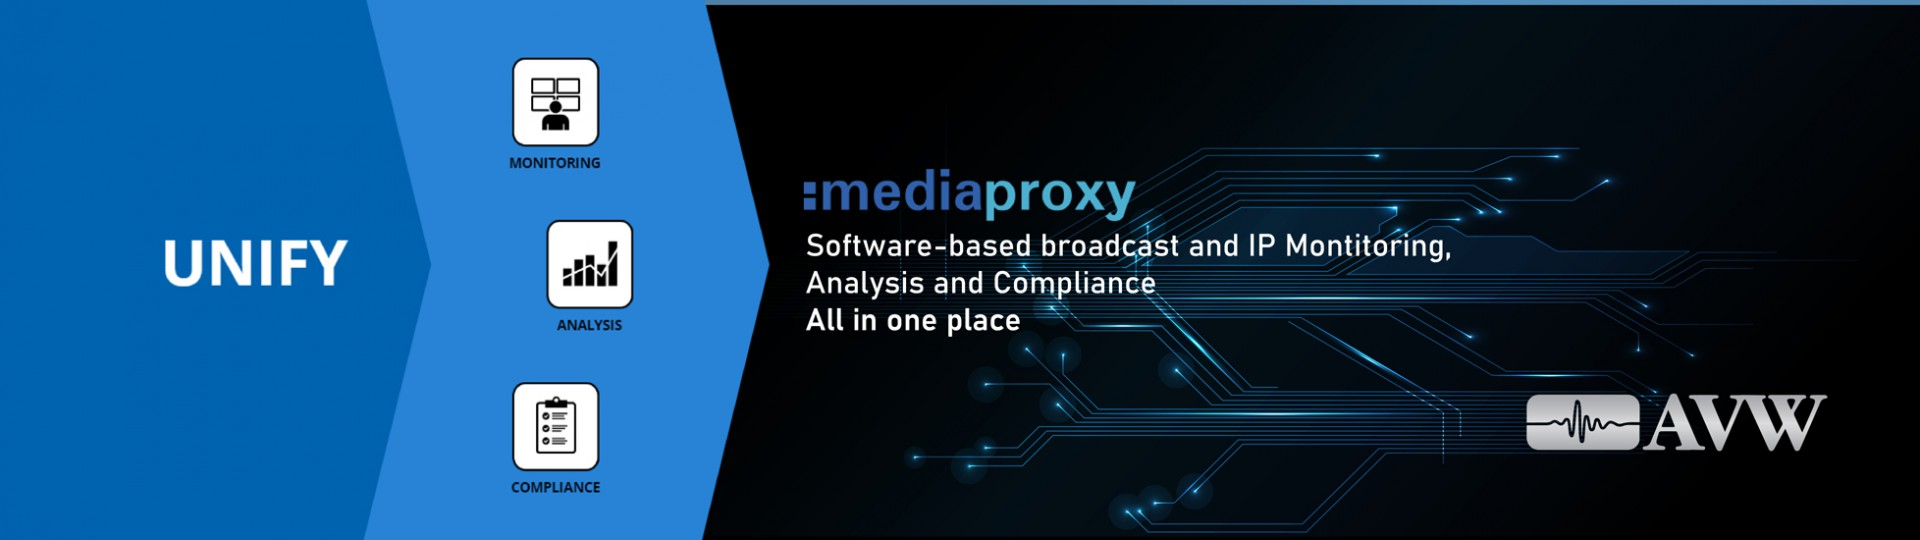 MediaProxy Solutions available from AVW in Australia / New Zealand